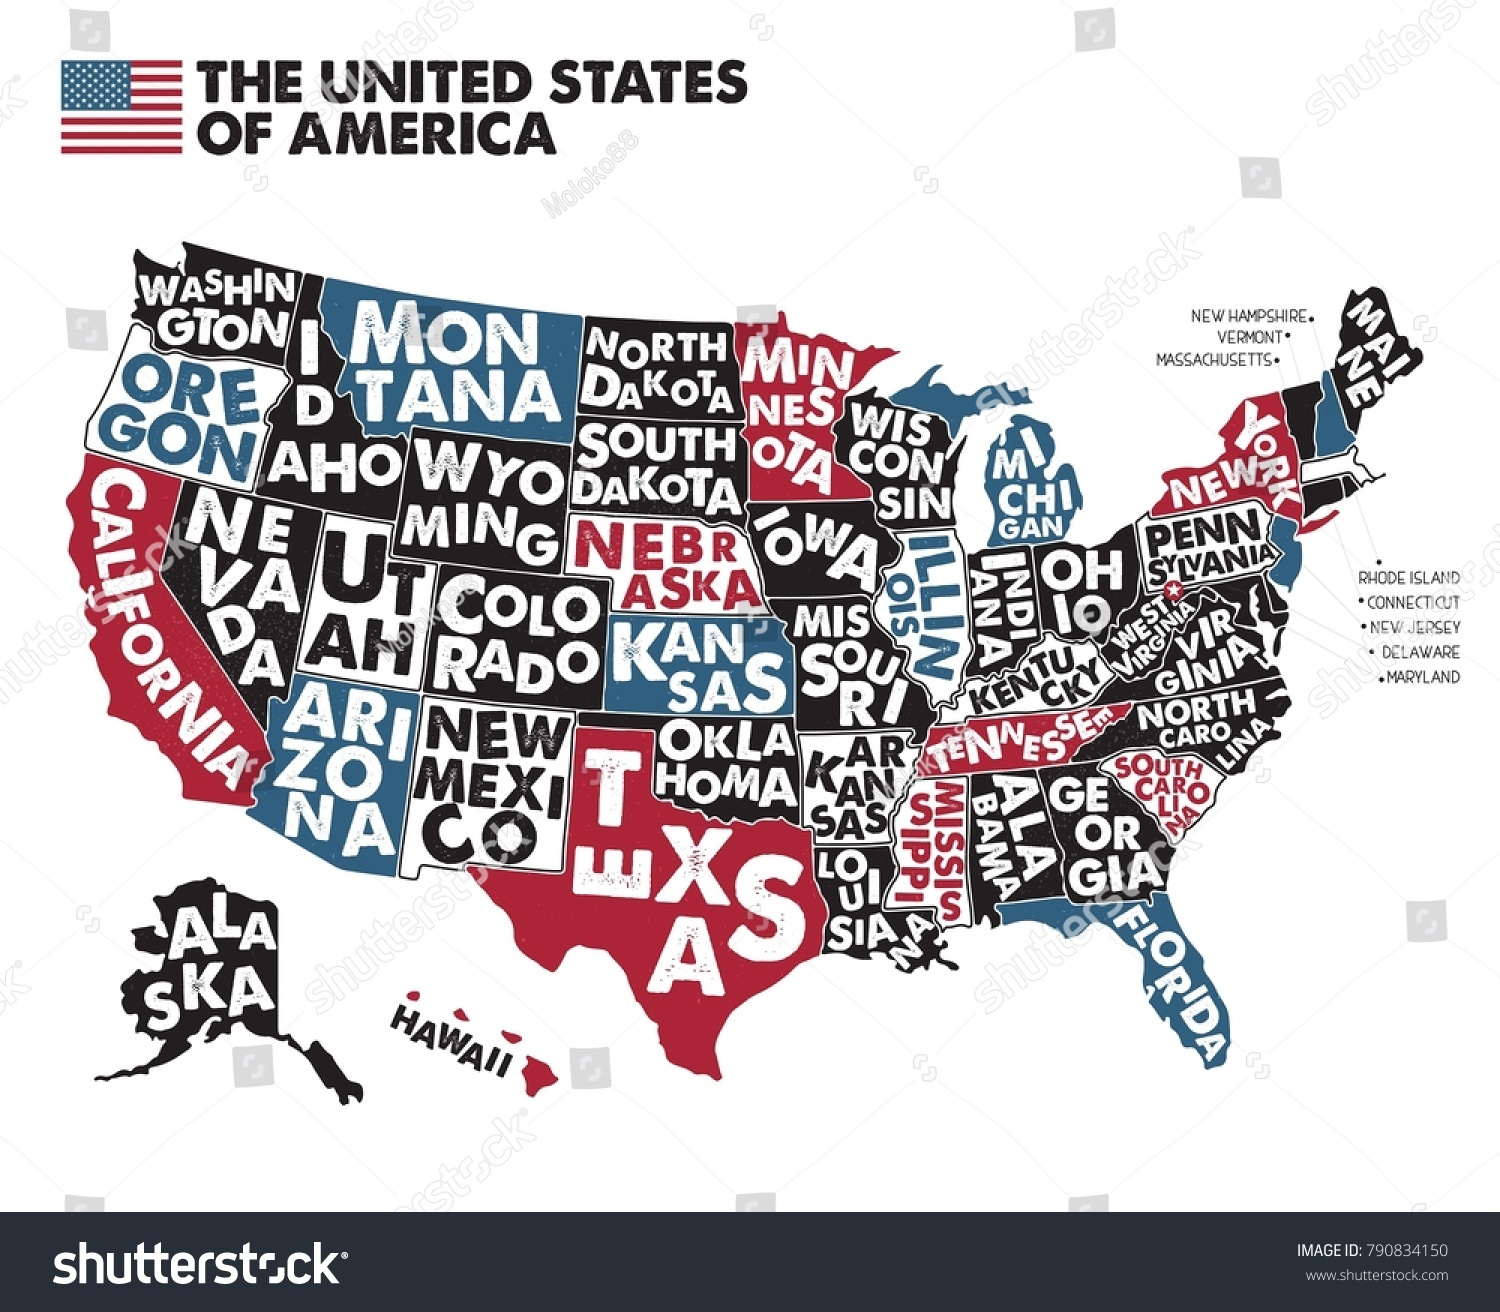 Poster map united states america state stock vector hd royalty free poster map of united states of america with state names blackred blue publicscrutiny Choice Image